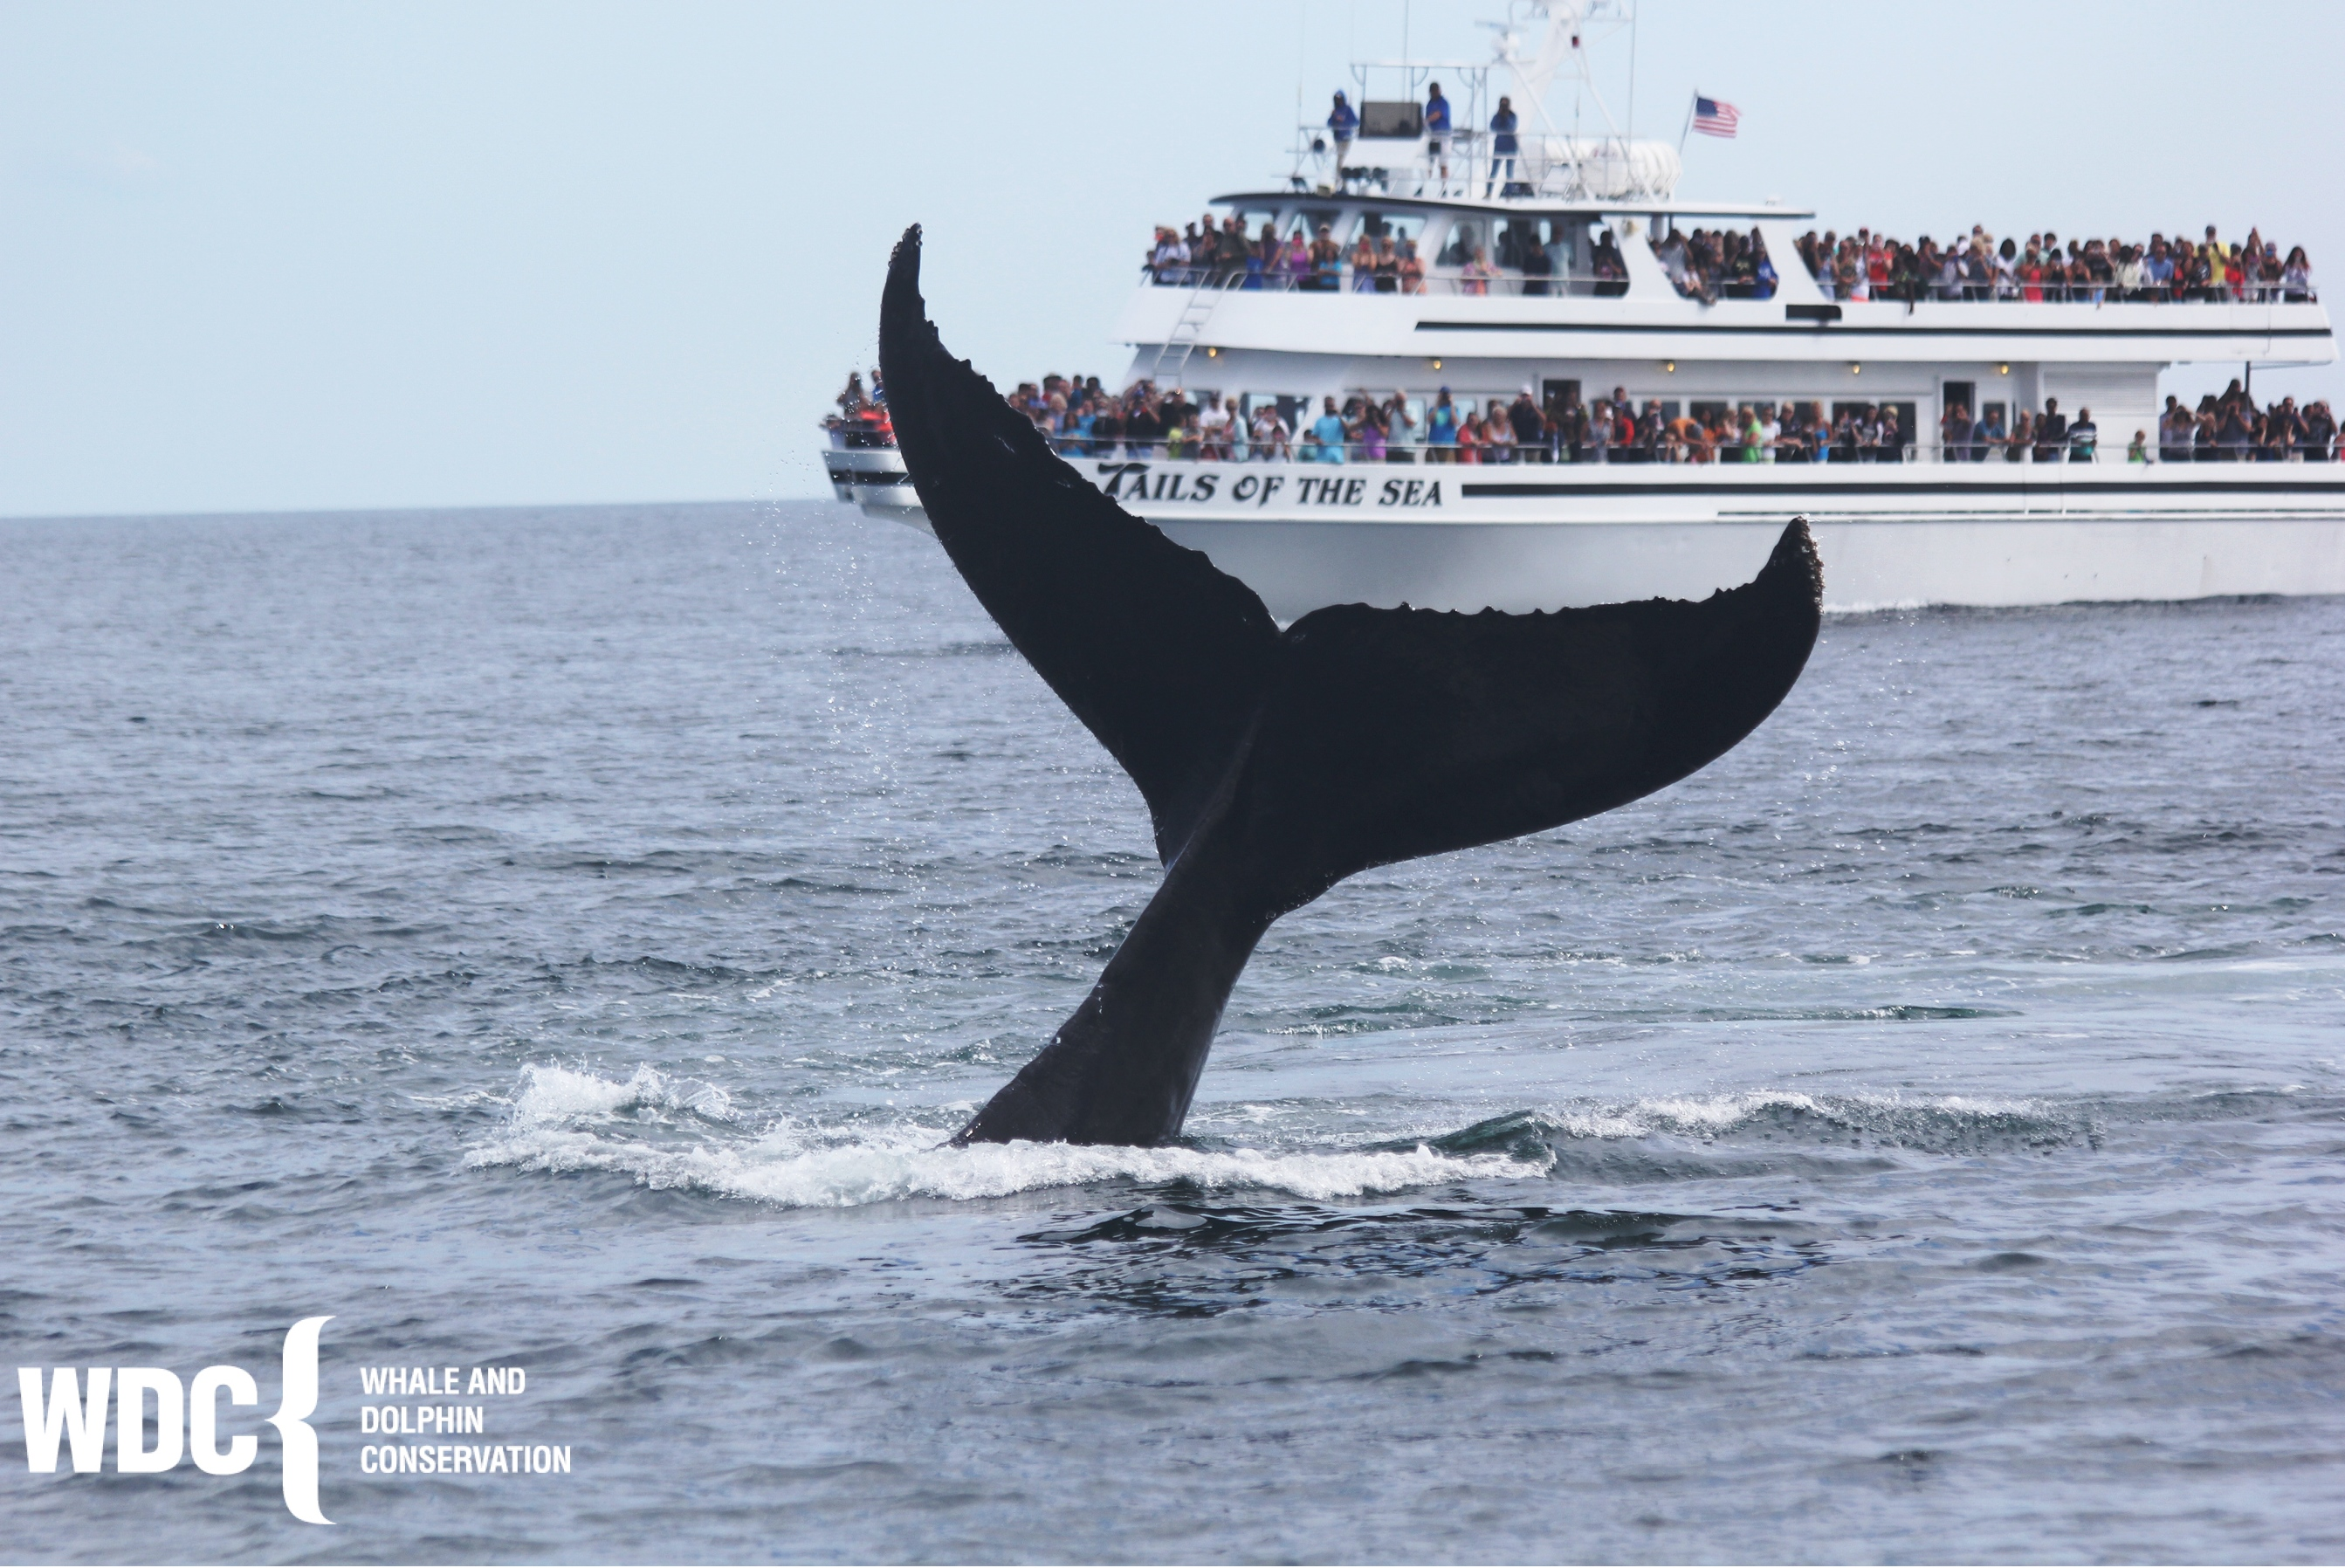 Capt John Whale Watching observing whale